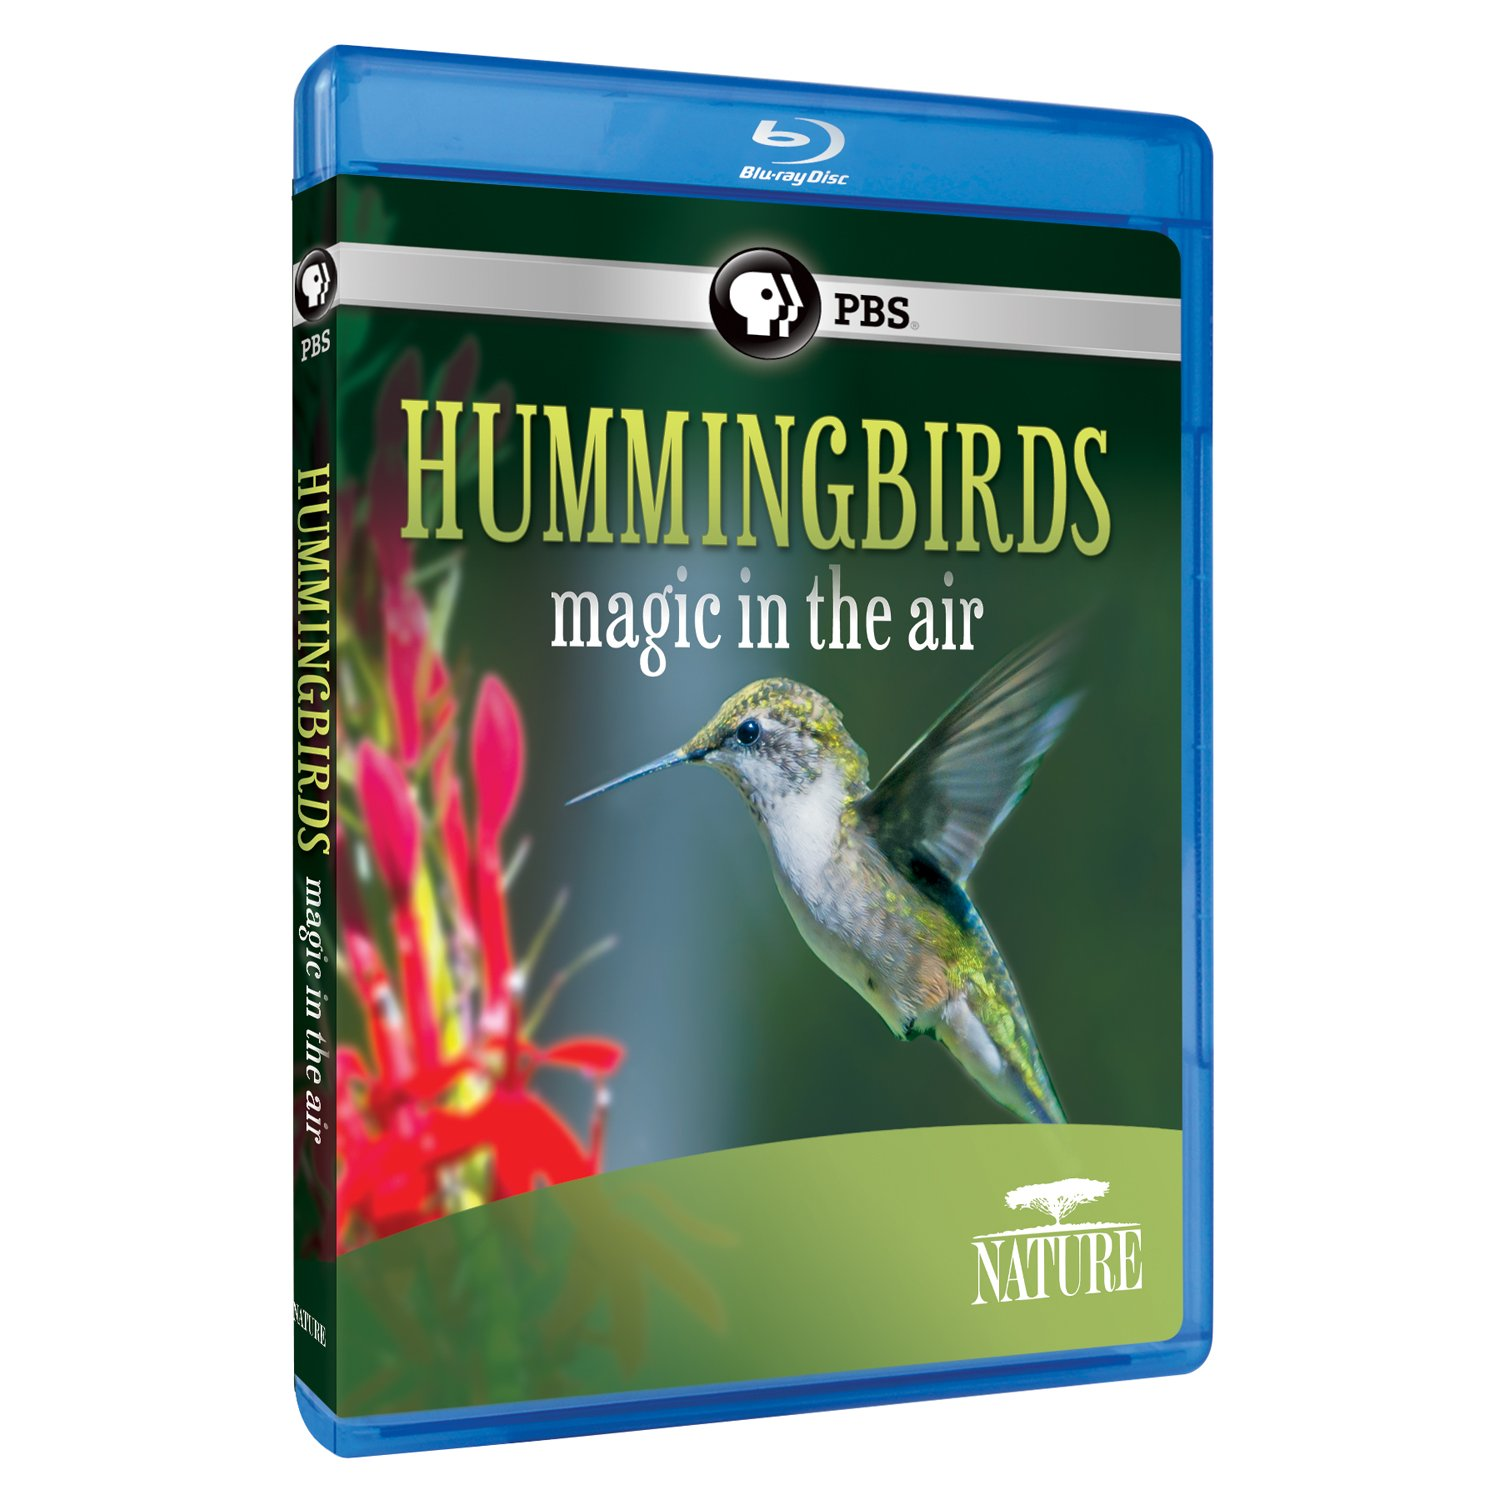 Nature: Hummingbirds [Blu-ray]